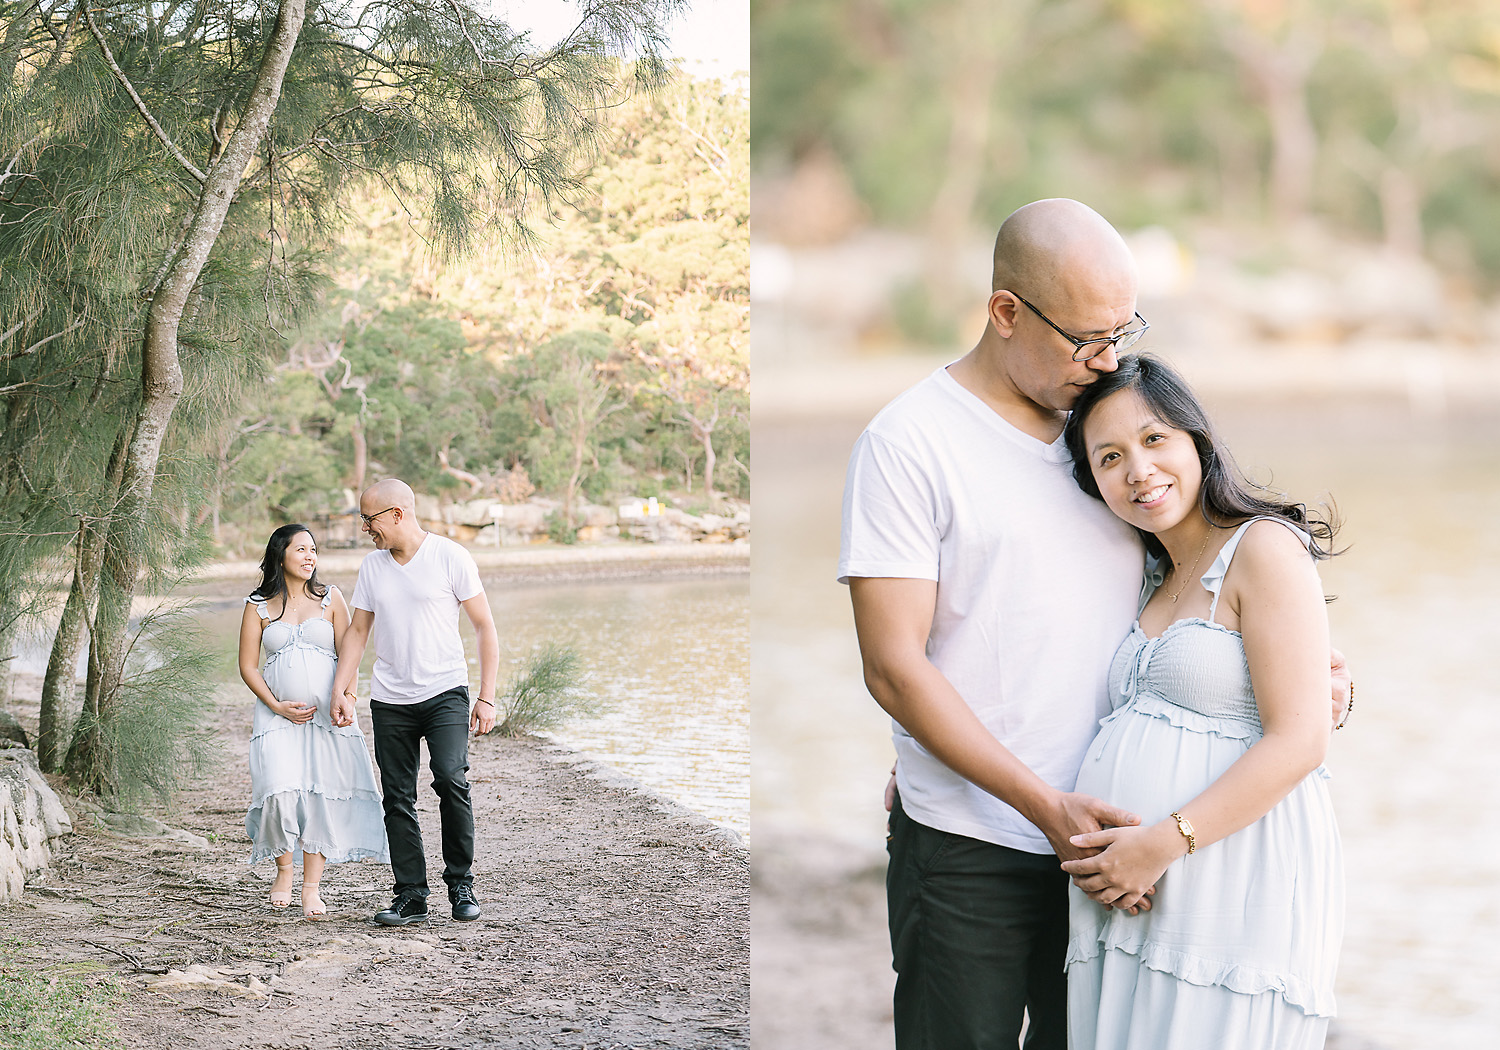 Two images side by side. First image of man and pregnant woman walking by river and looking at each other happily, second image of man kissing woman on top of head at camera as photographed by Sutherland Shire Maternity Photographer Sevenish Photography